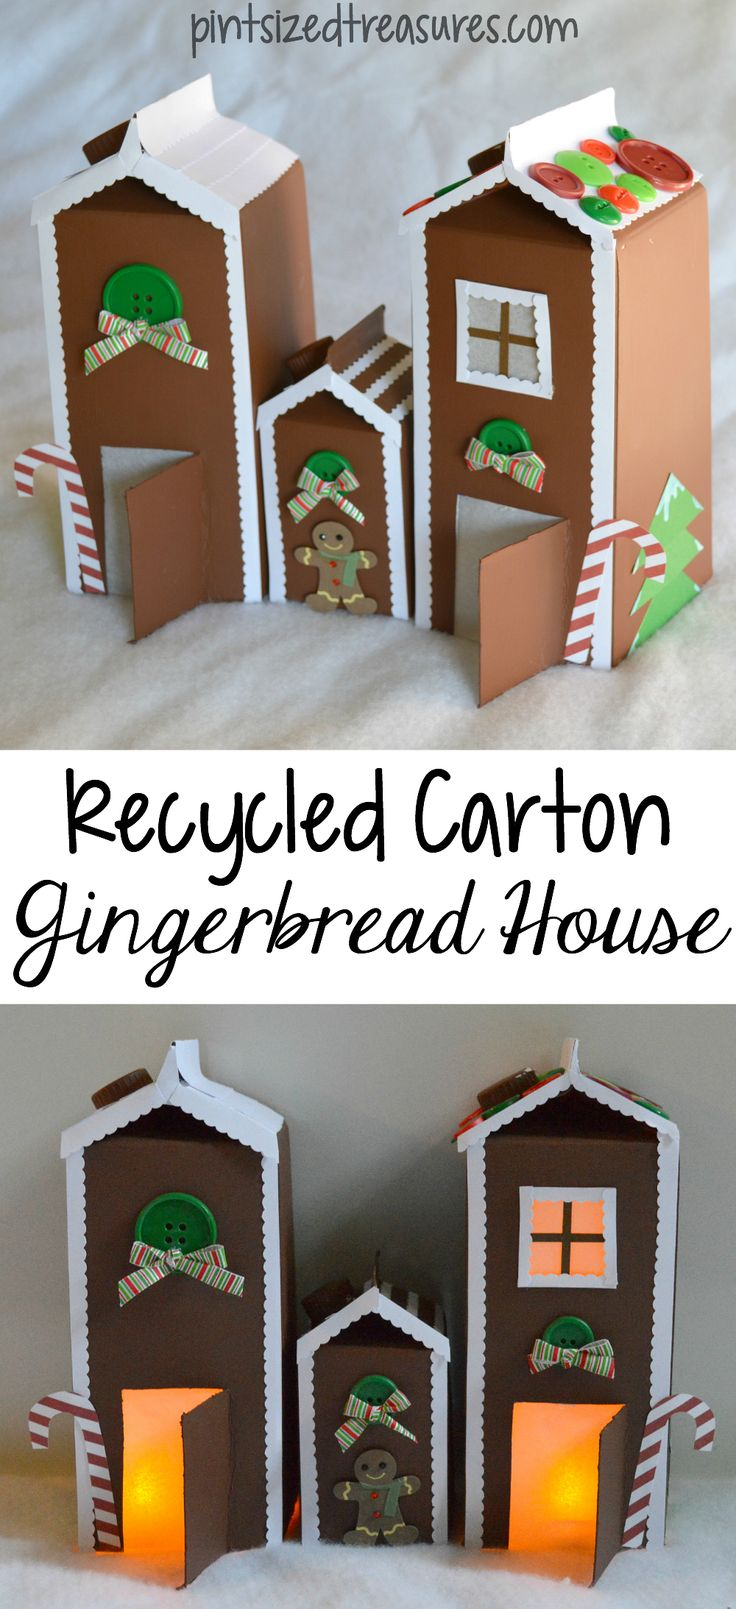 air jordan bred restock 2014 Easy paper gingerbread house made for recyclables   alicanwrite